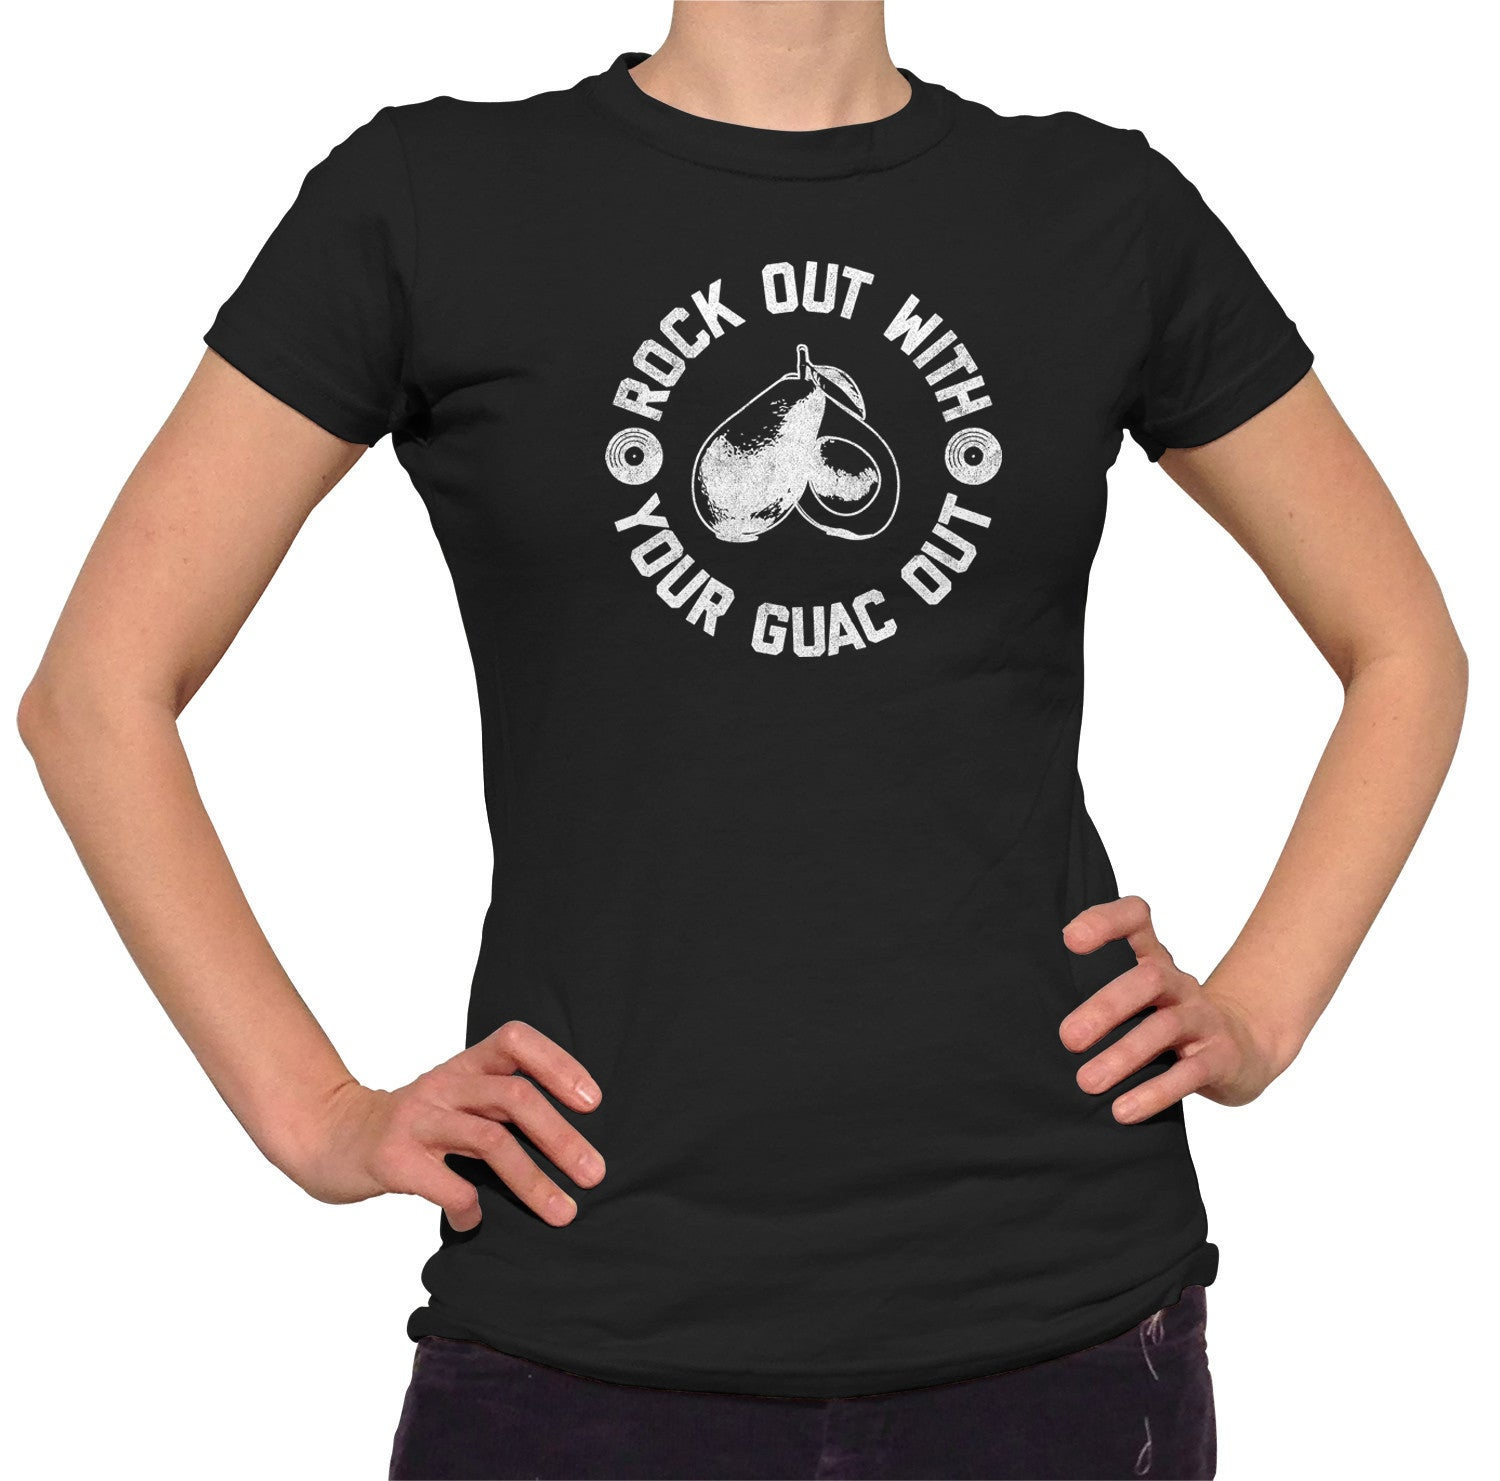 Women's Rock Out With Your Guac Out Guacamole T-Shirt - Juniors Fit